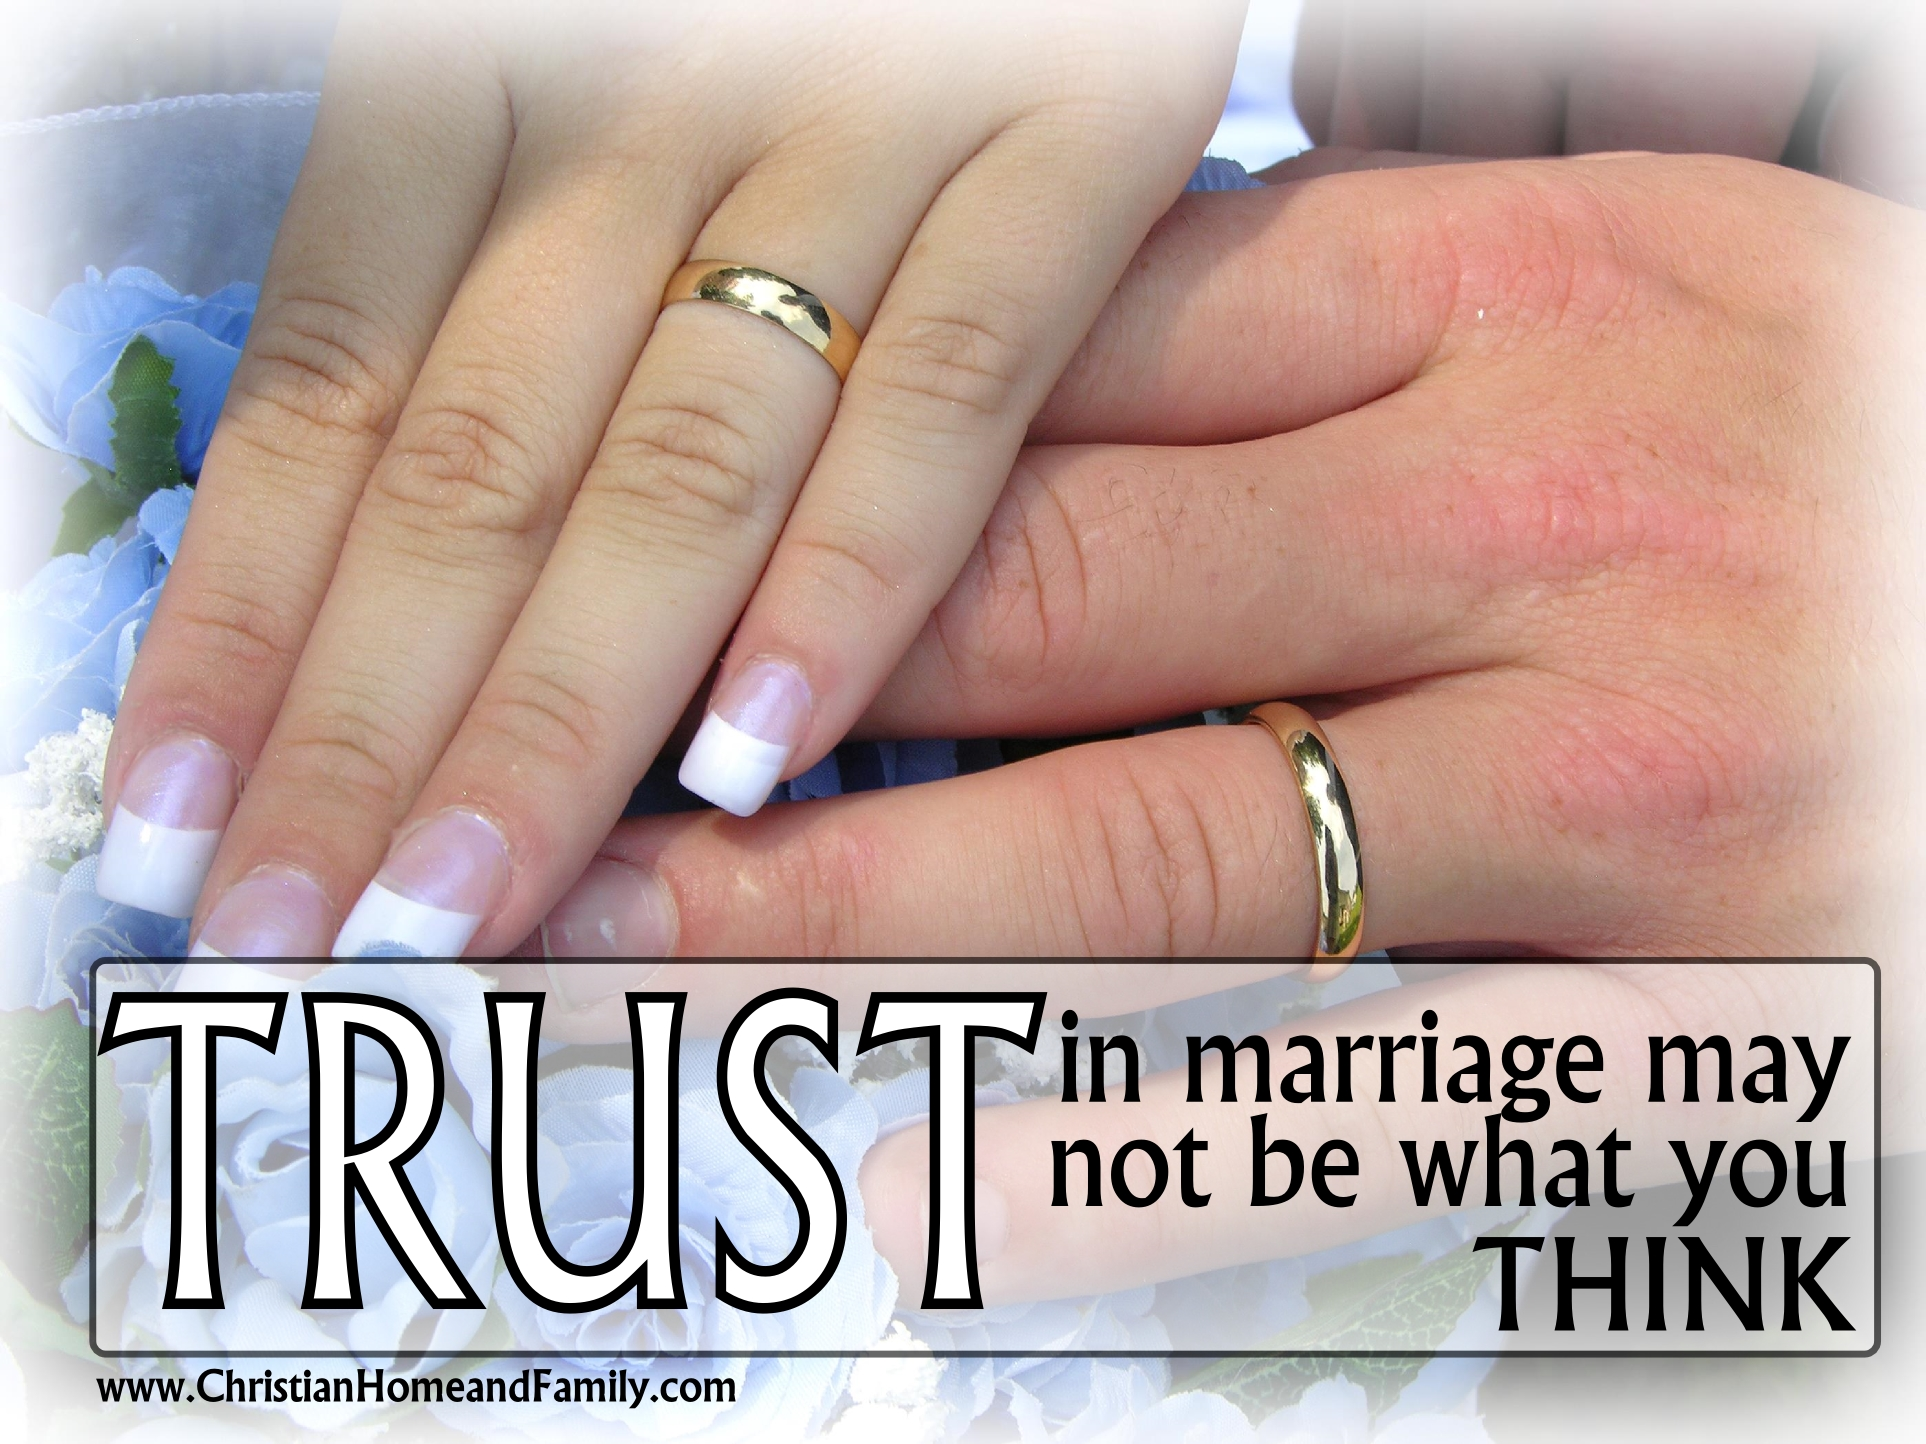 Trusting god for a spouse